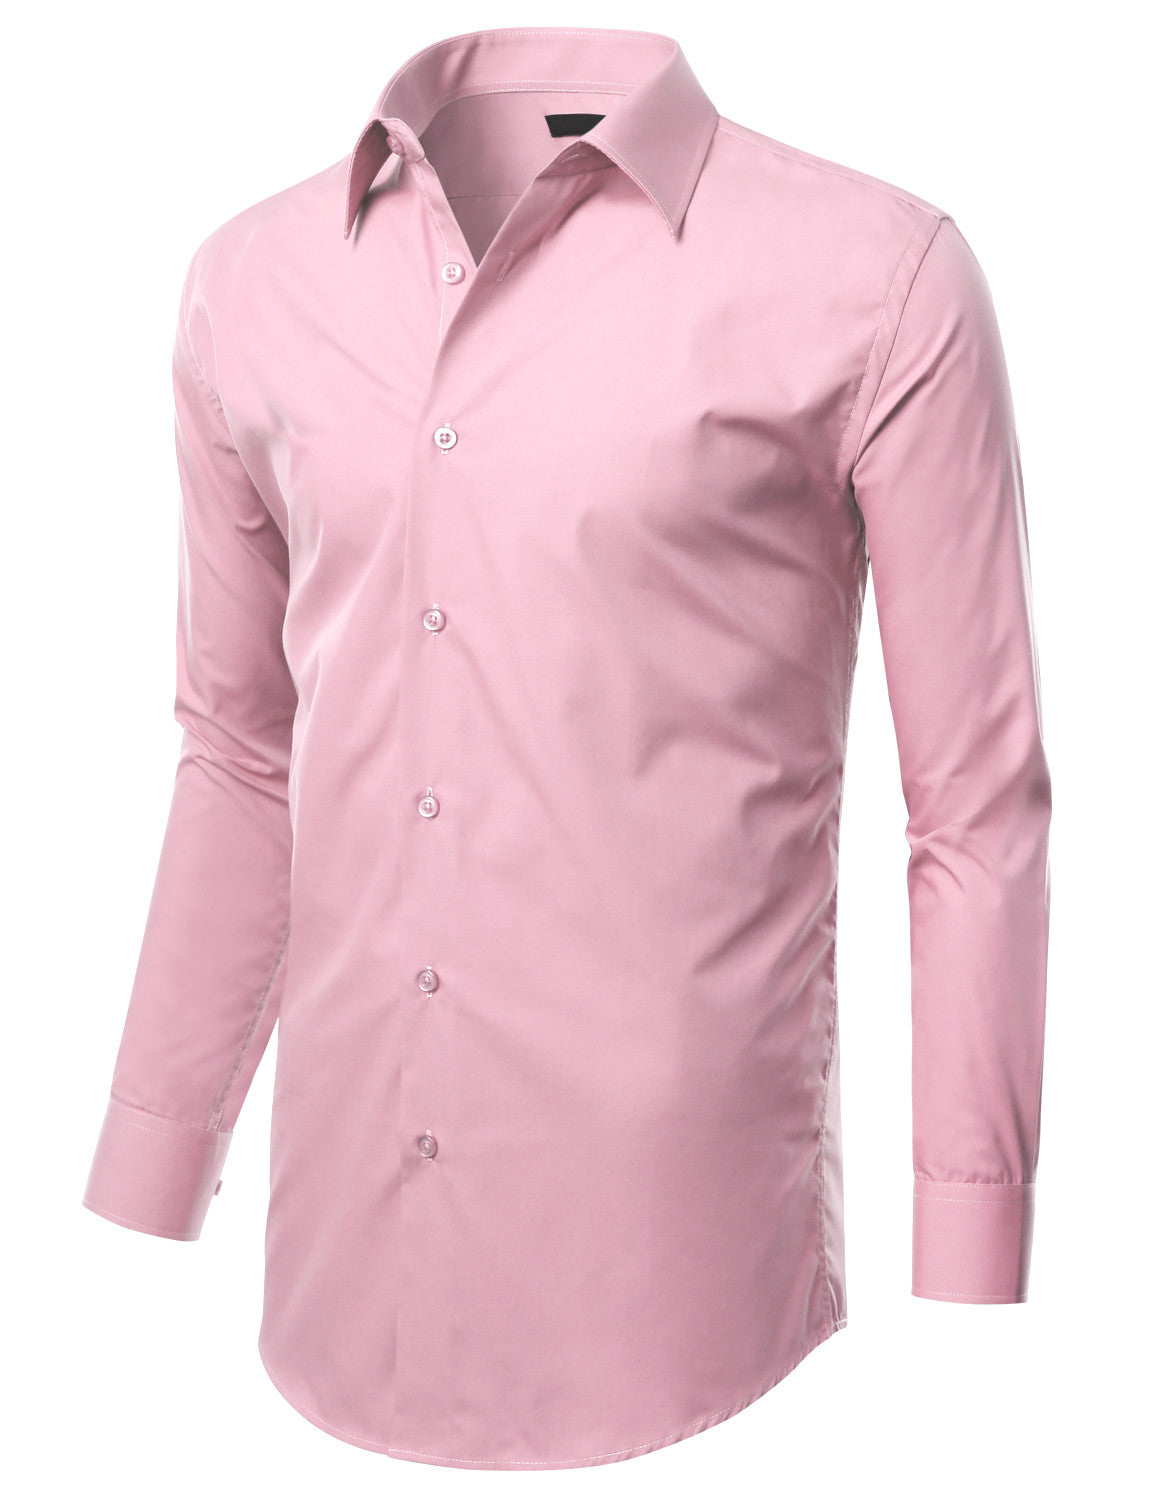 TC625PINK Pink Slim Fit Dress Shirt w/ Reversible Cuff (Big & Tall Available)- MONDAYSUIT